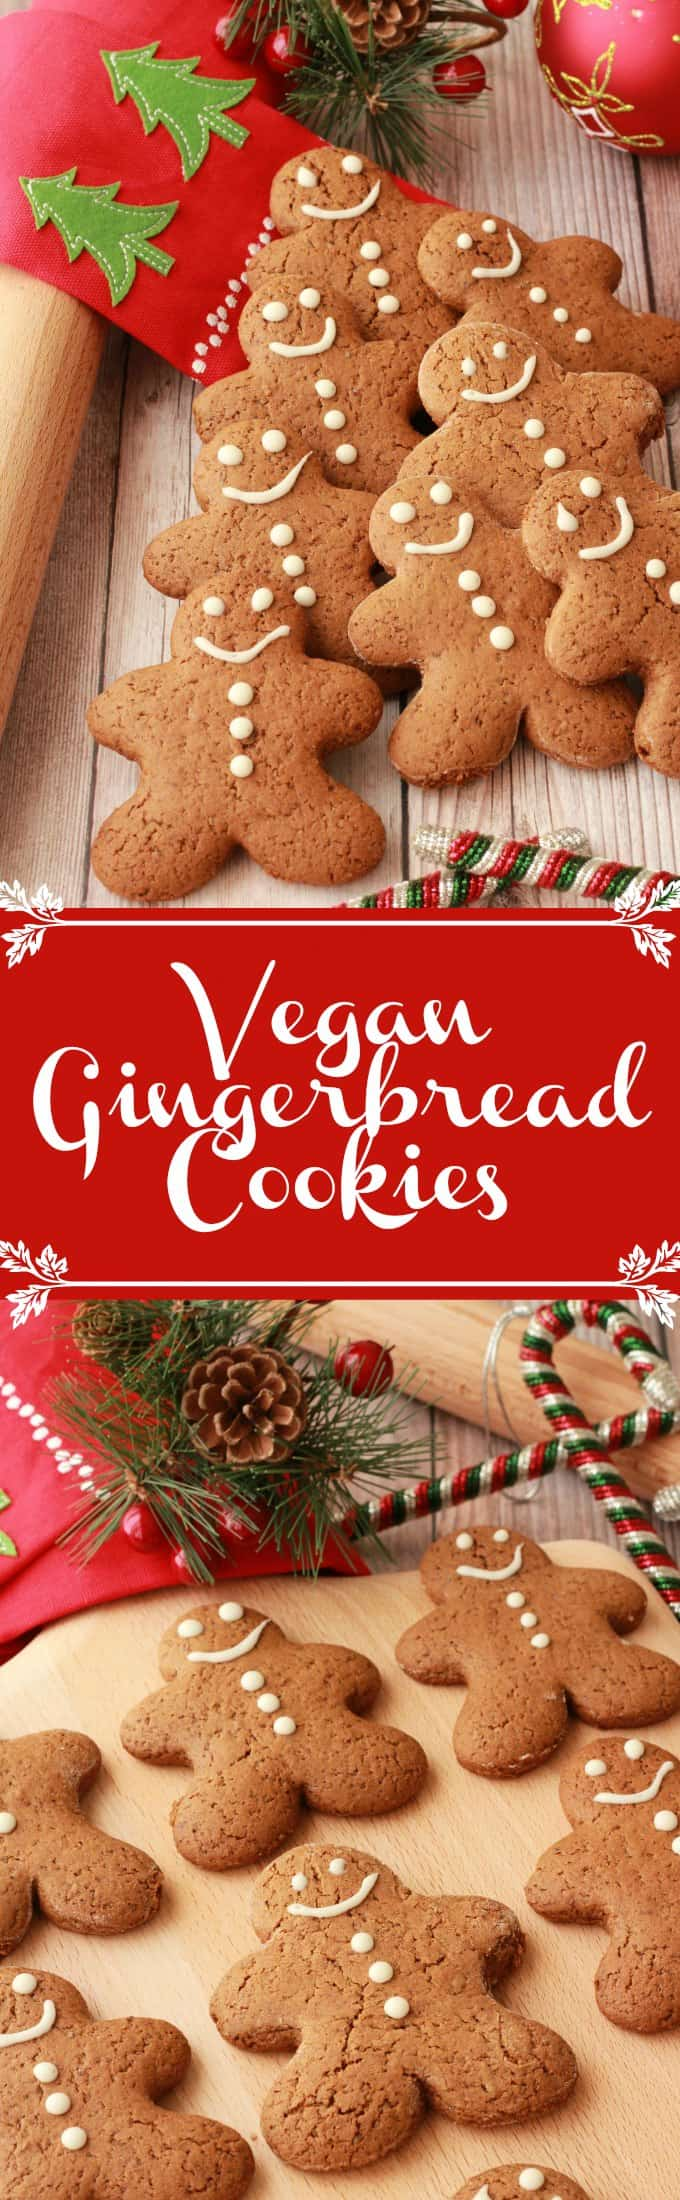 Festive and fun vegan gingerbread cookies. These gingerbread men are crisp on the outside, soft on the inside and packed with ginger and brown sugar flavor. | Vegan | Vegan Cookies | Vegan desserts | lovingitvegan.com